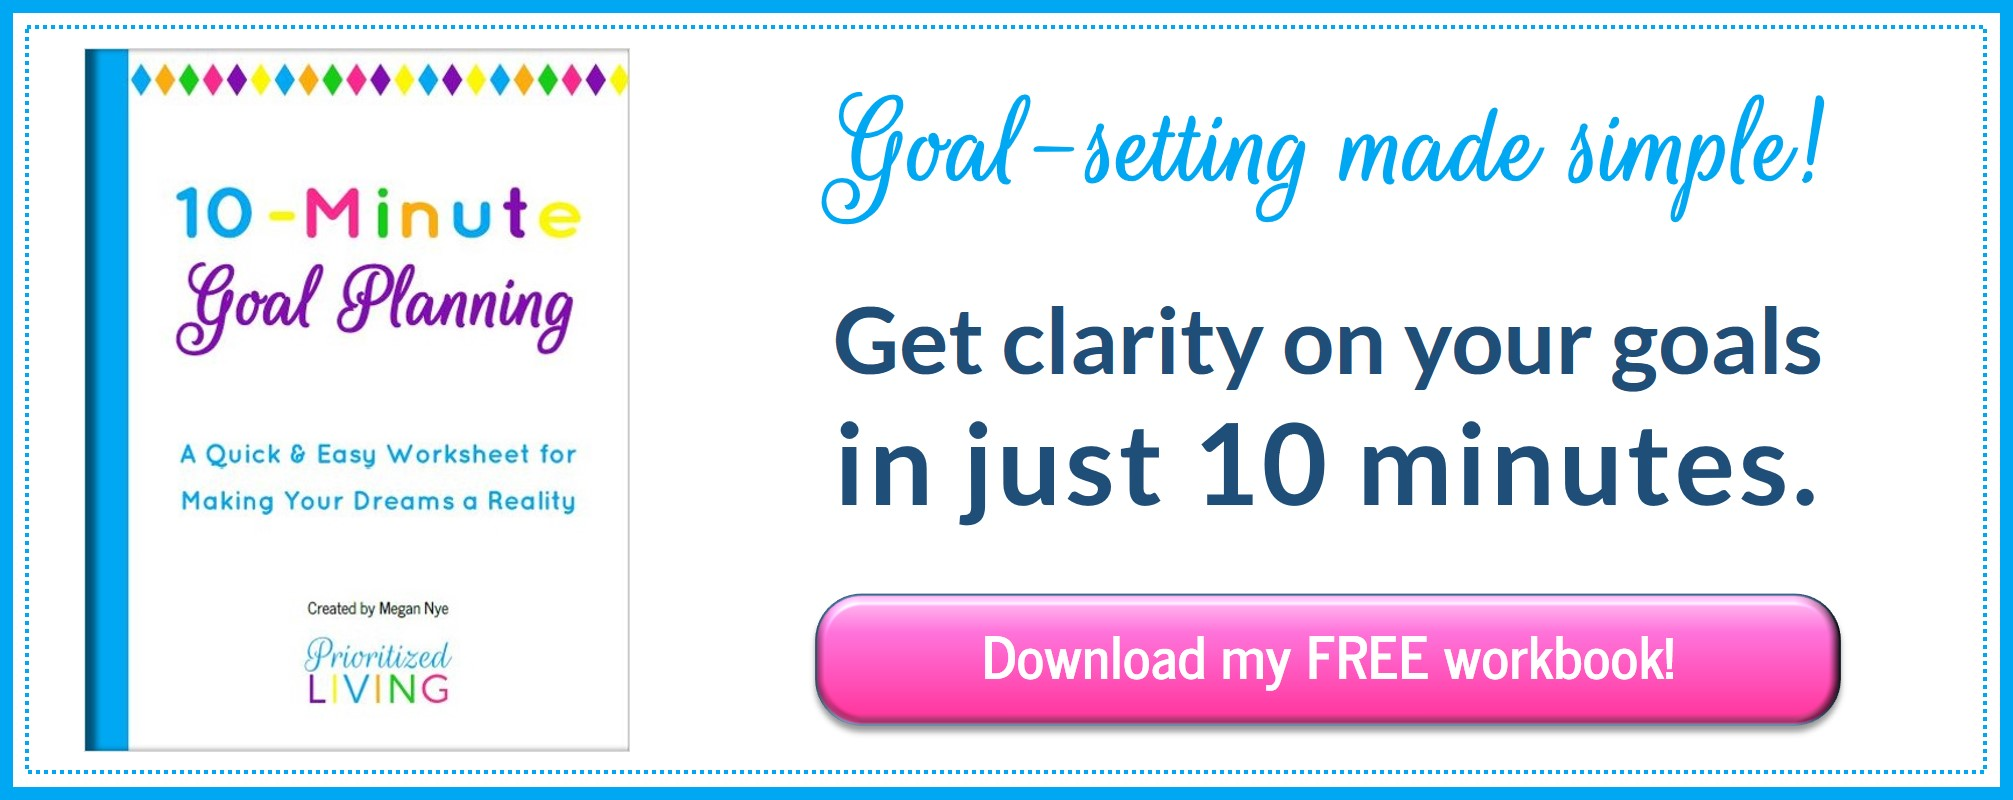 Get clarity on your goals in just 10 minutes - Download your FREE 10-Minute Goal Planning workbook.